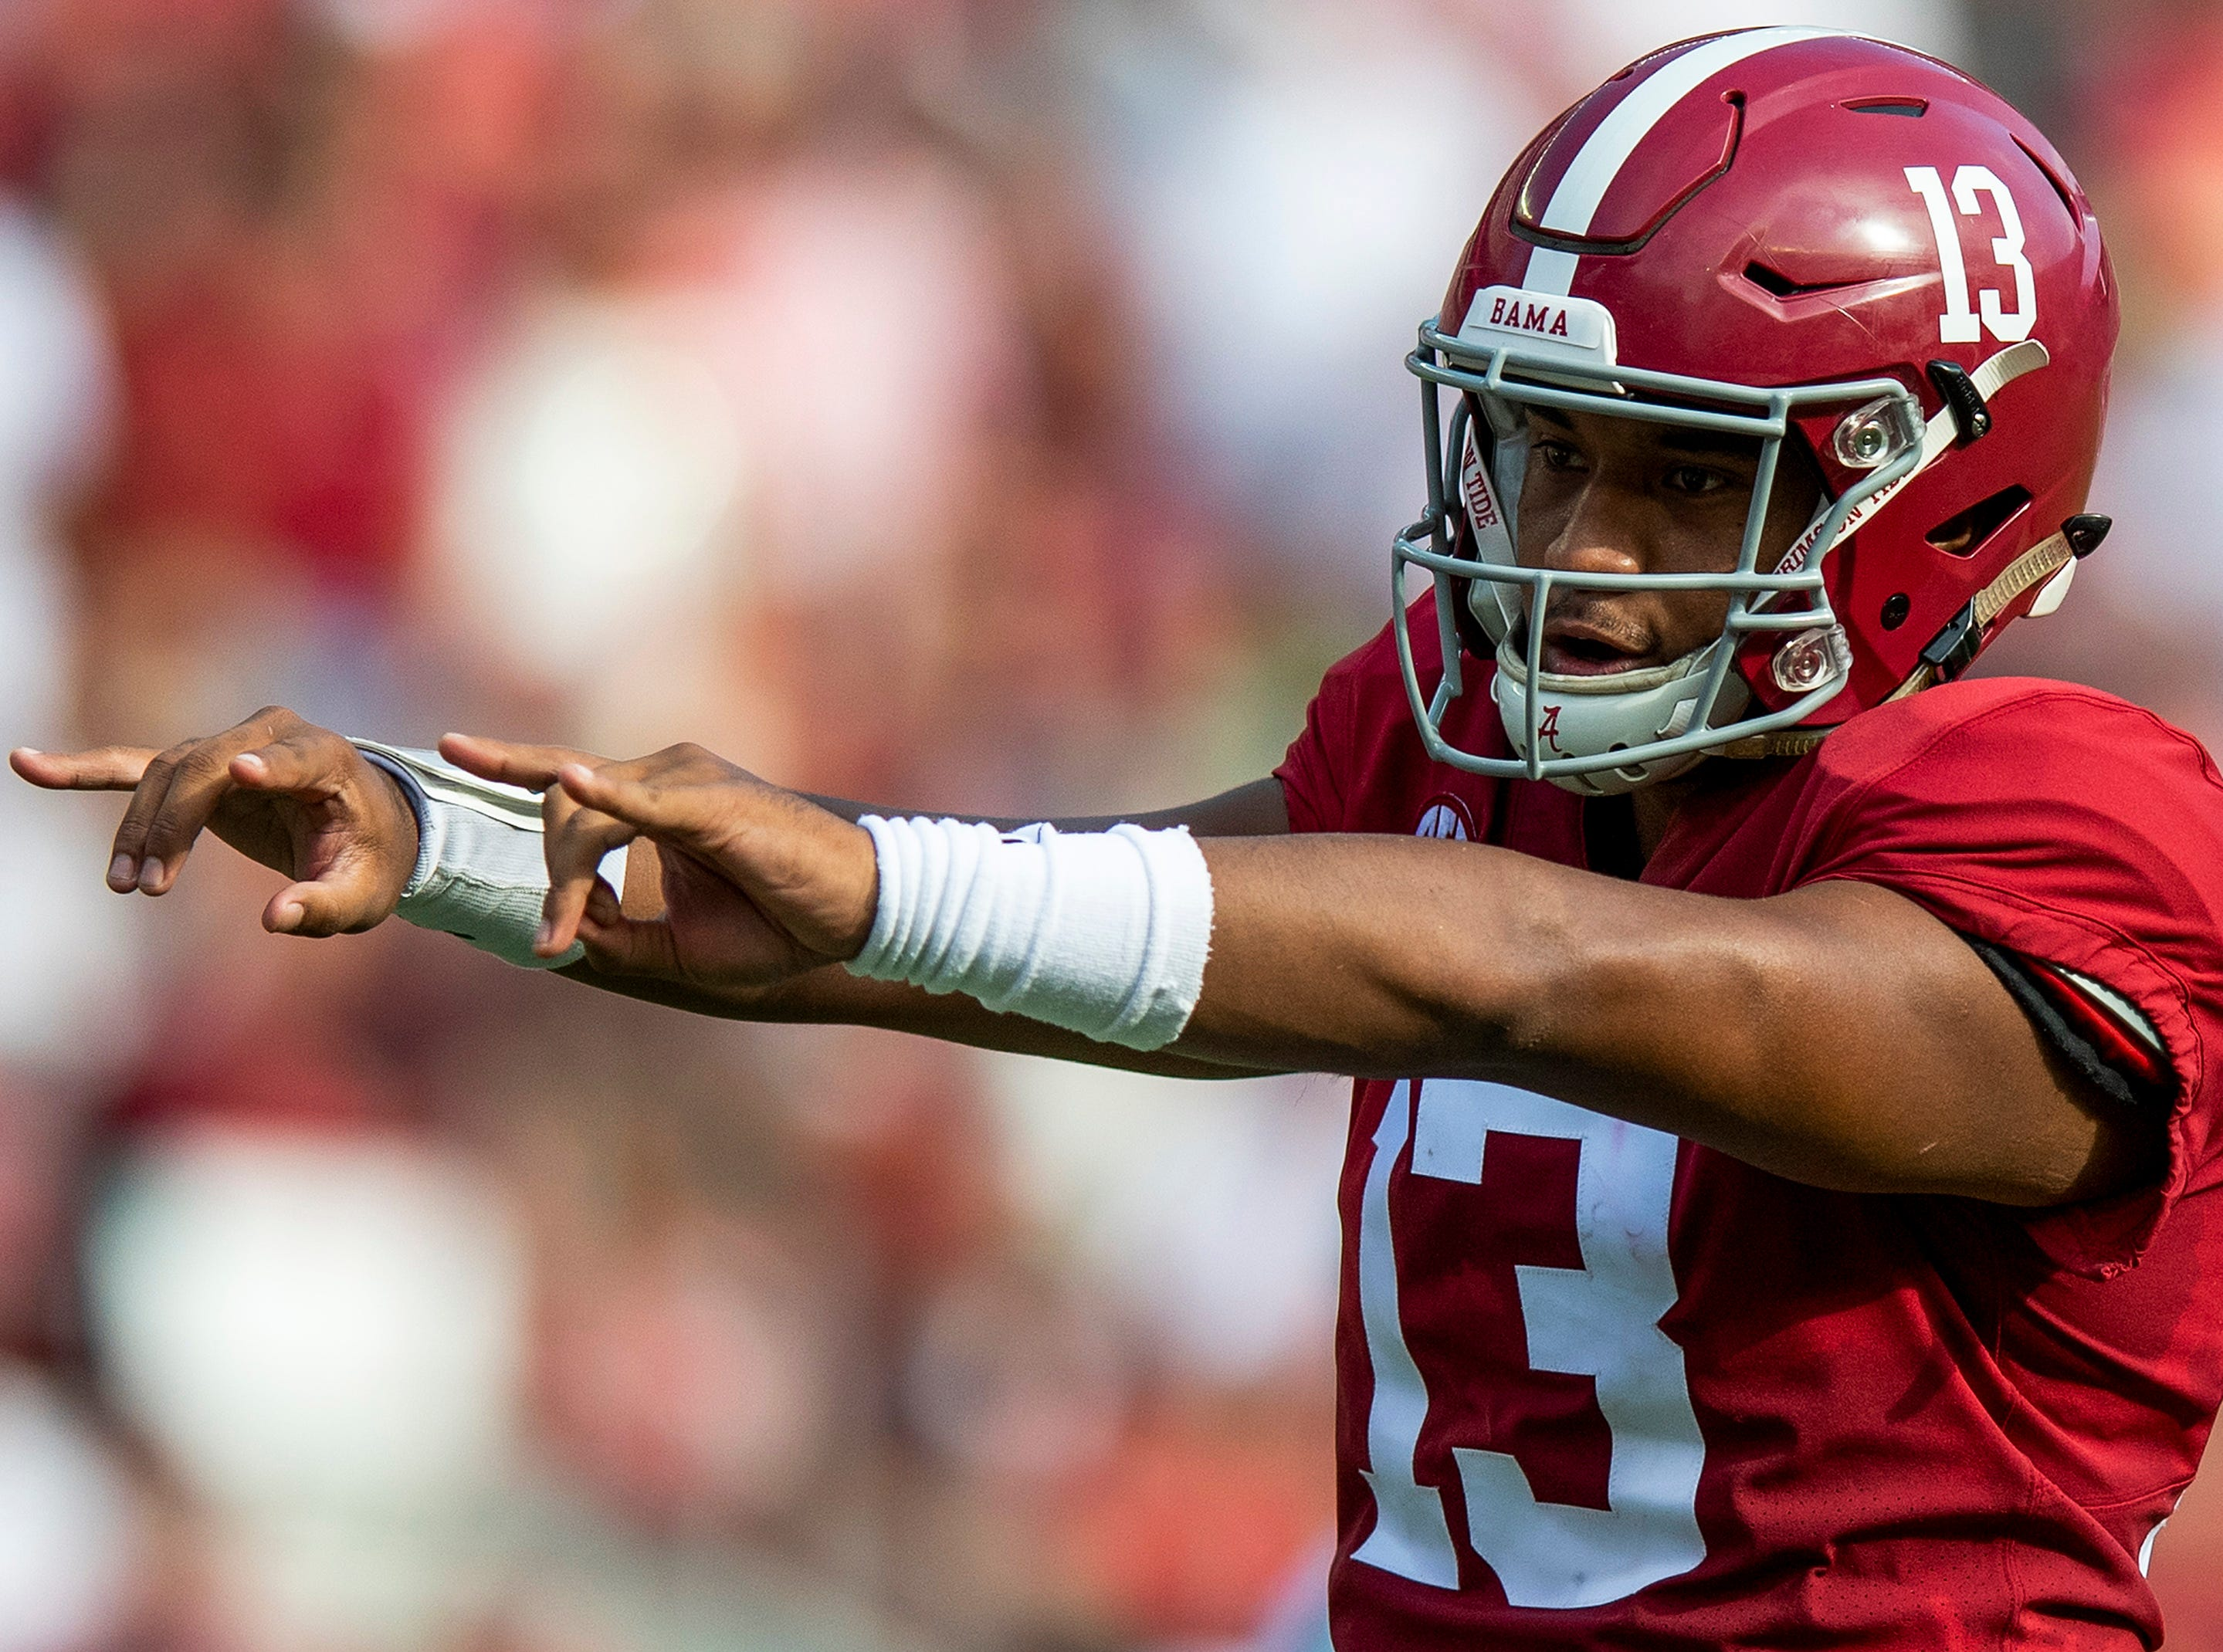 Alabama quarterback Tua Tagovailoa (13) In first half action against Texas A&M in Tuscaloosa, Ala., on Saturday September 22, 2018.